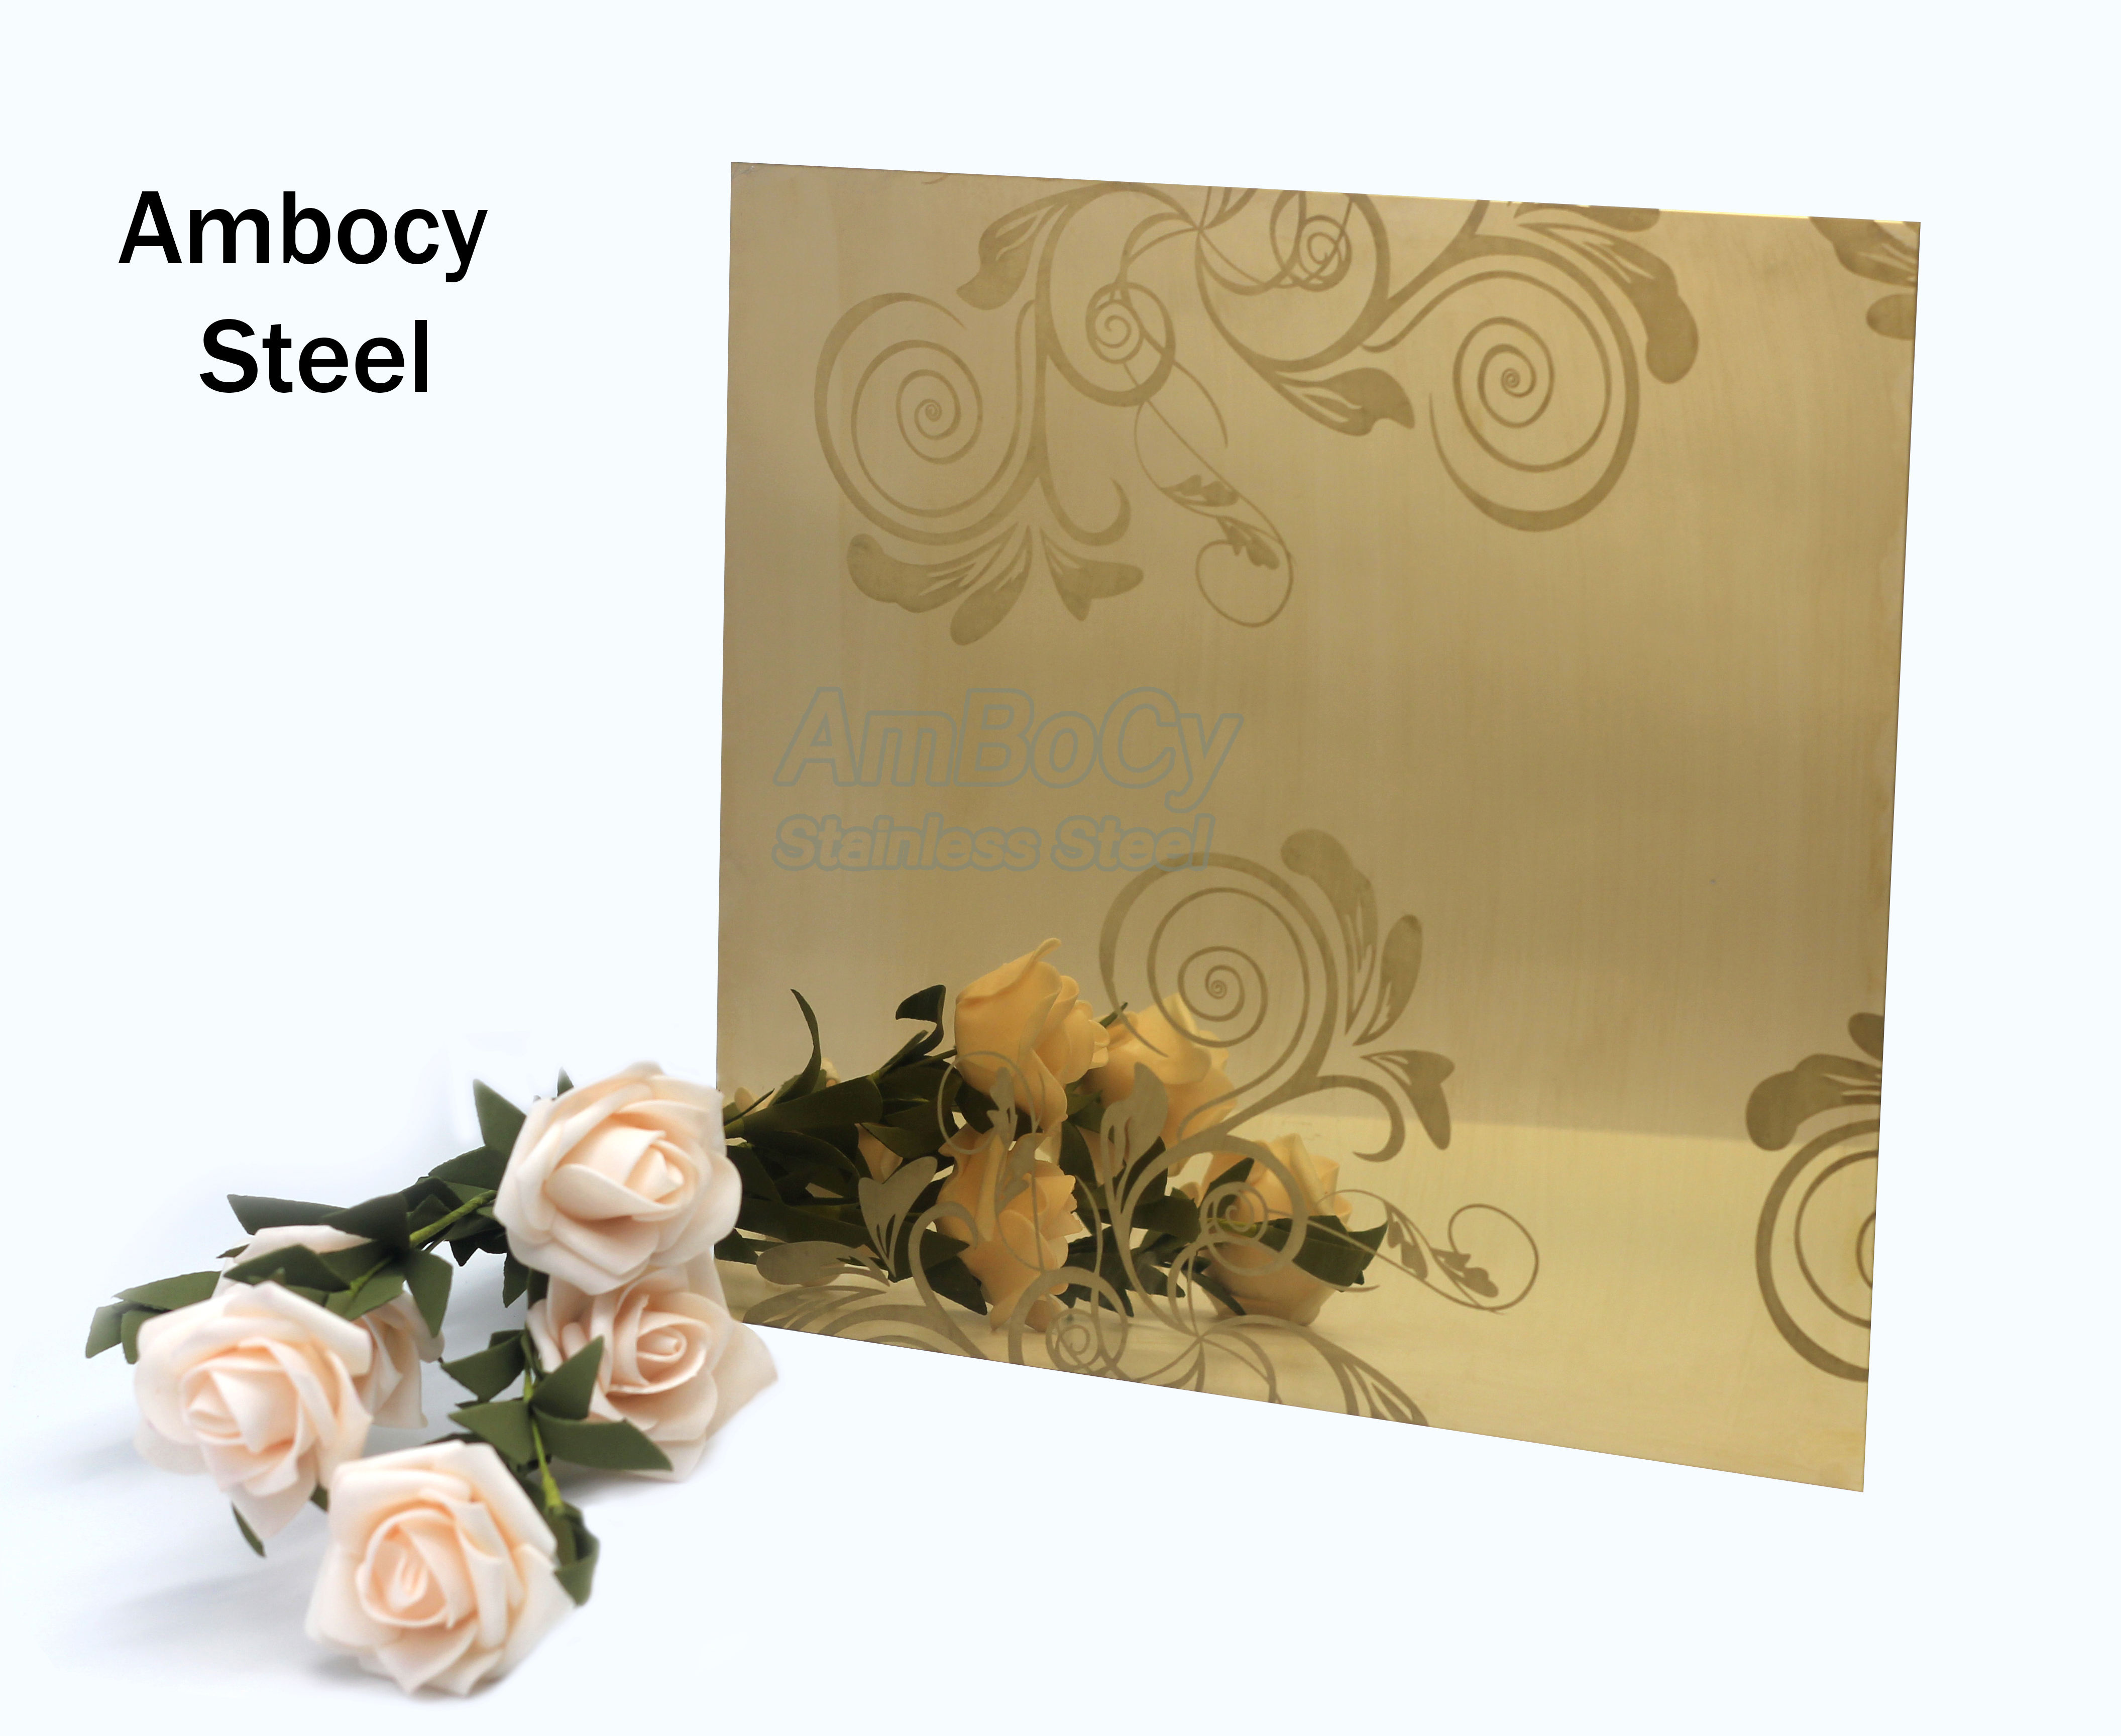 201 304 316l 410 430 Stainless Steel Sheet /Plate Customized Pattern Etched Decorative Stainless Steel sheet Supplier